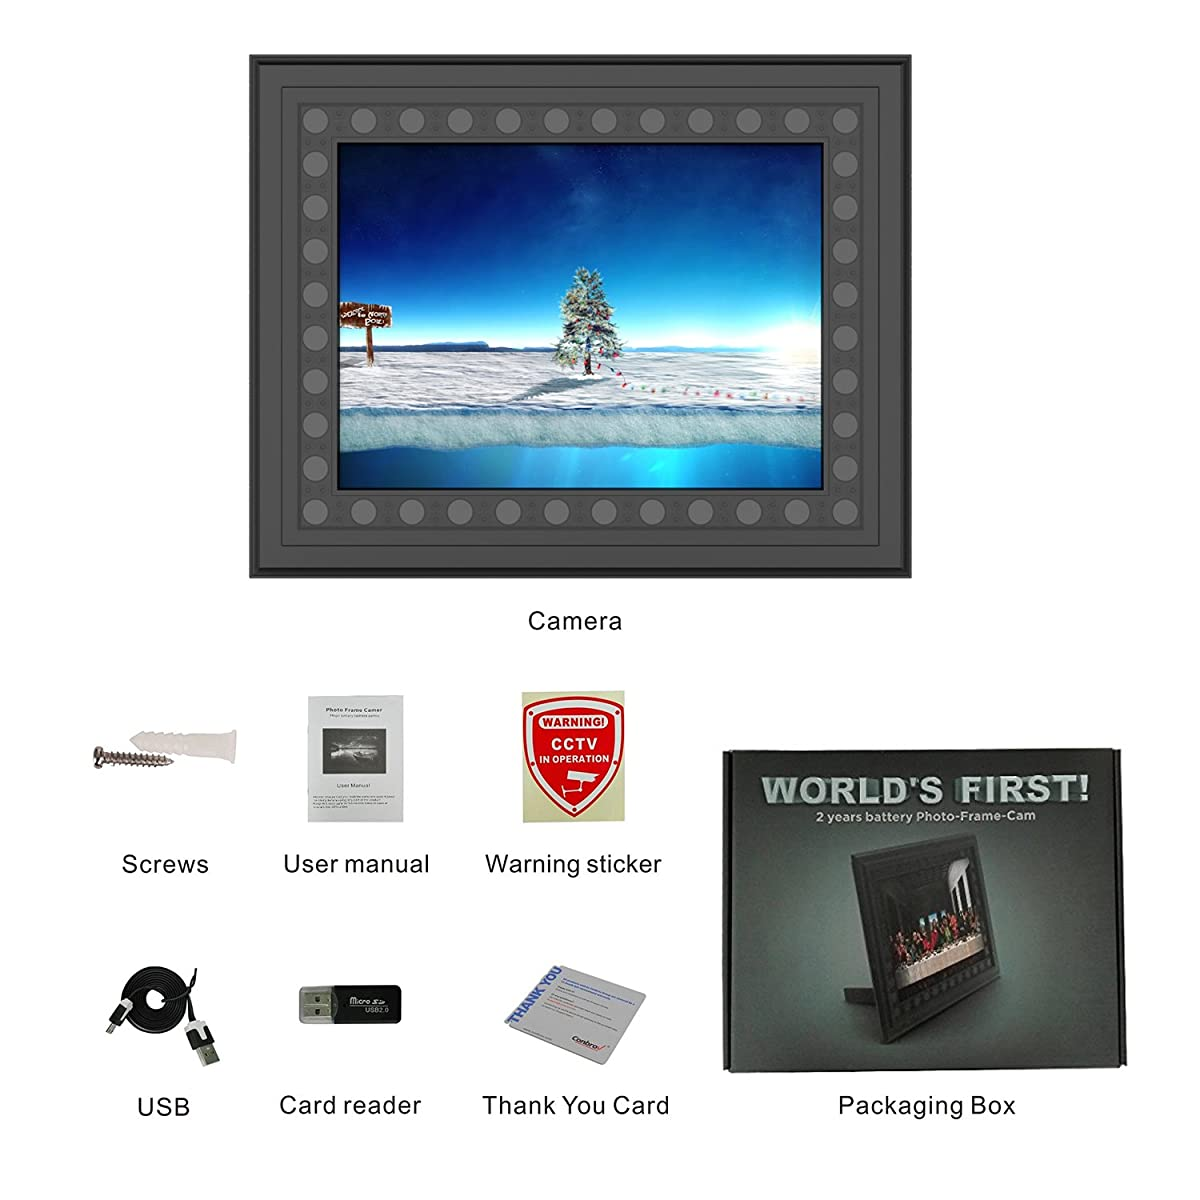 Conbrov T10 HD 720P Photo Frame Hidden Spy Camera Night Vision Motion Activated Home Security Camera Nanny Cam Video Recorder Covert DVR with Built-in 10000mah Battery, 2 Year Long Standby-Black